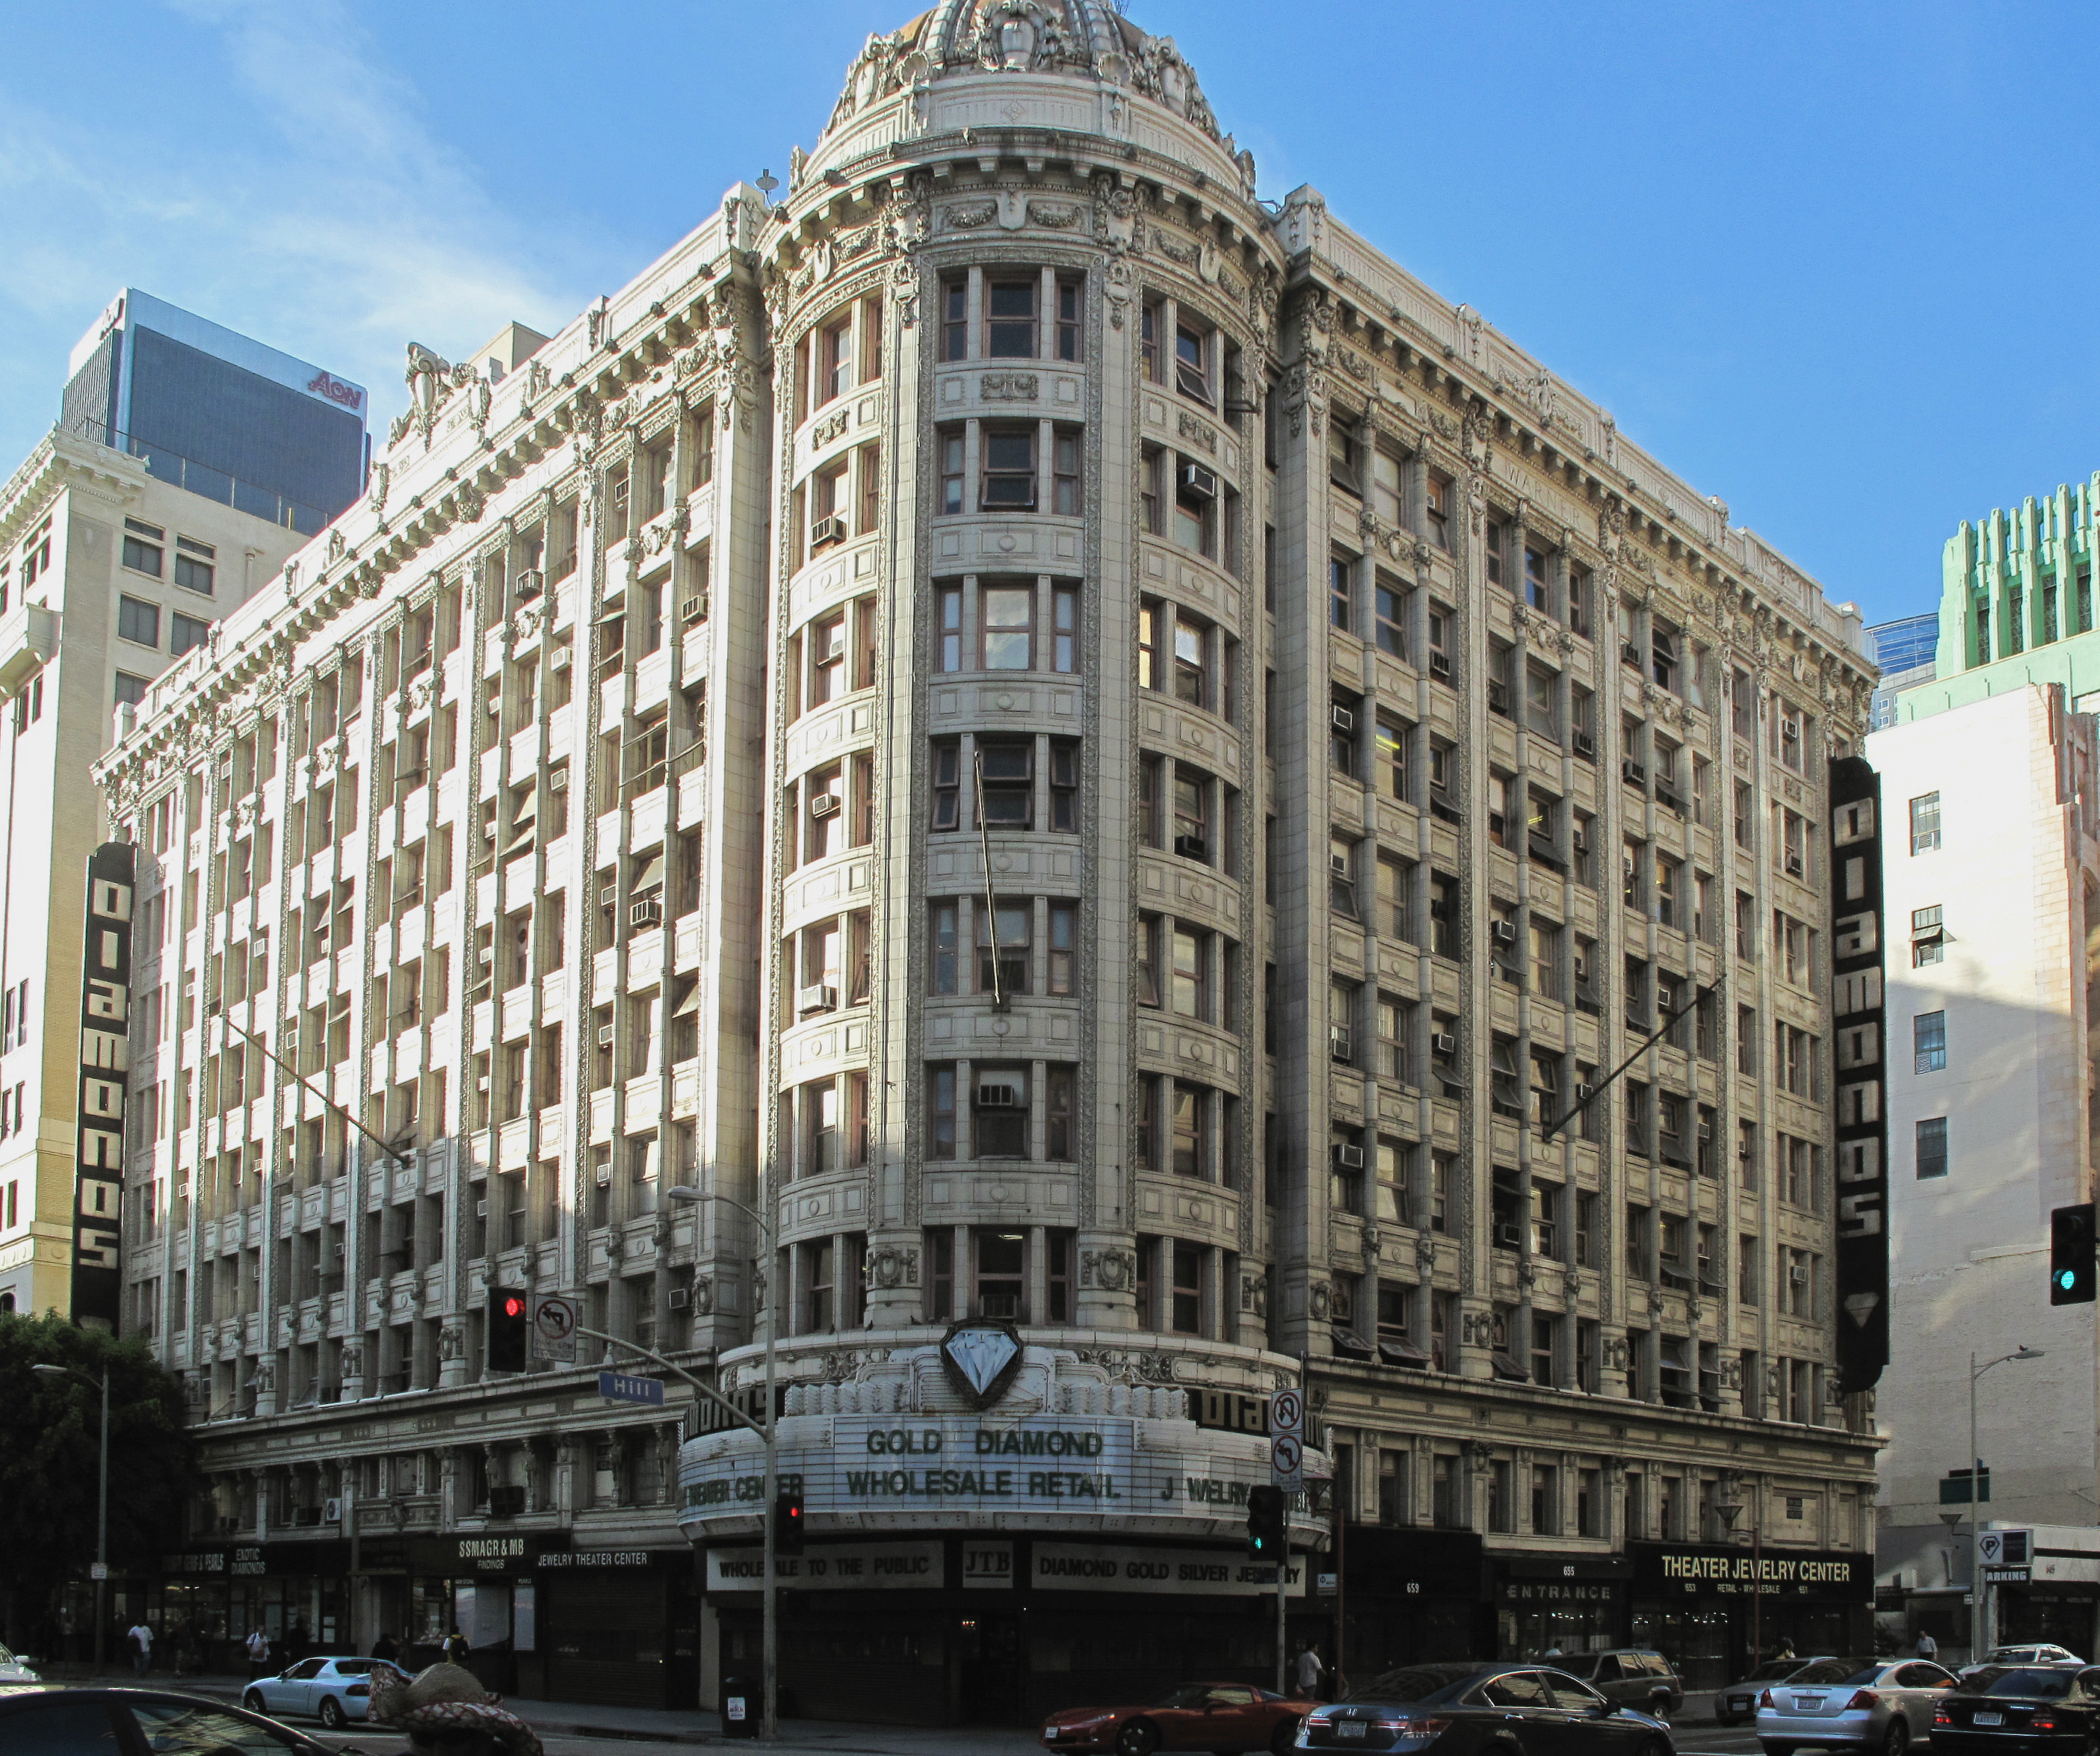 Los Angeles Mall: File:Jewelry Theater Center, 7th & Hill, Los Angeles.jpg